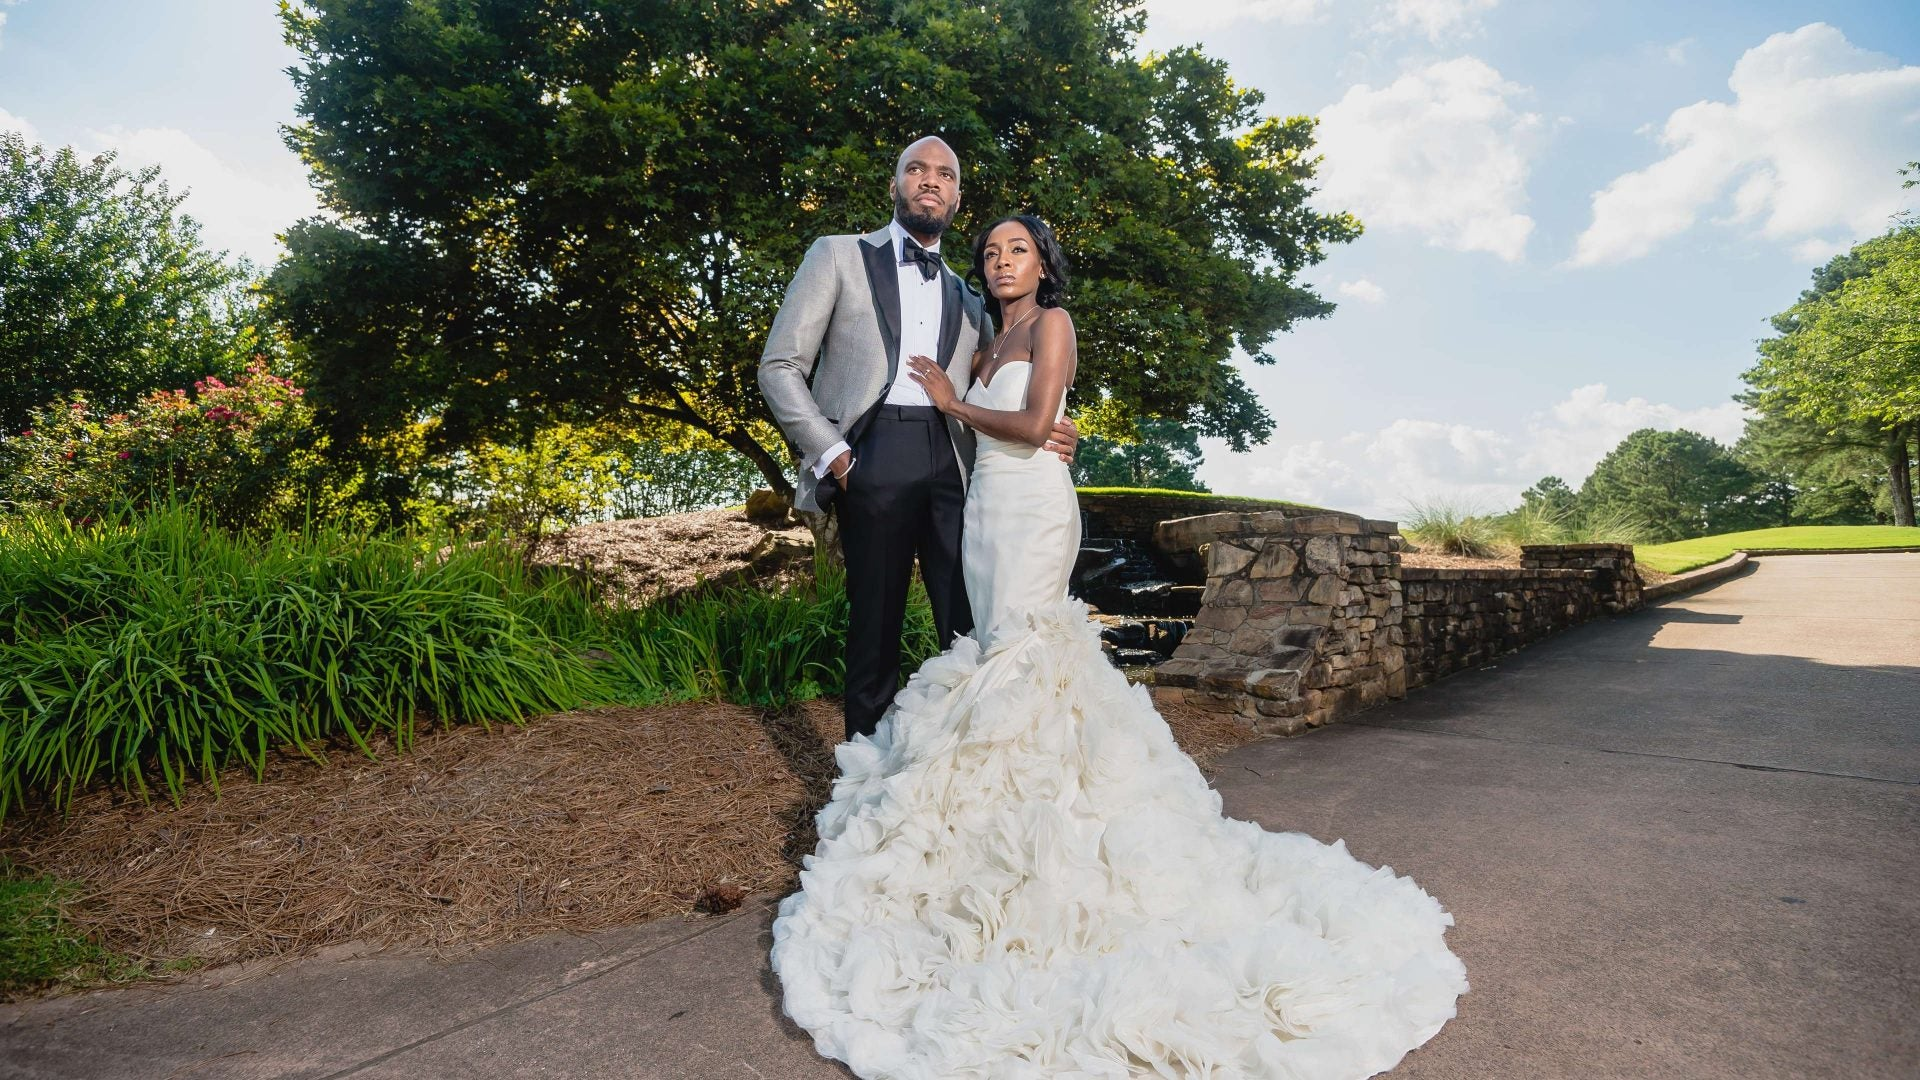 Bridal Bliss: Raquel and Jahlell Had A Regal Wedding Fit For A King and Queen